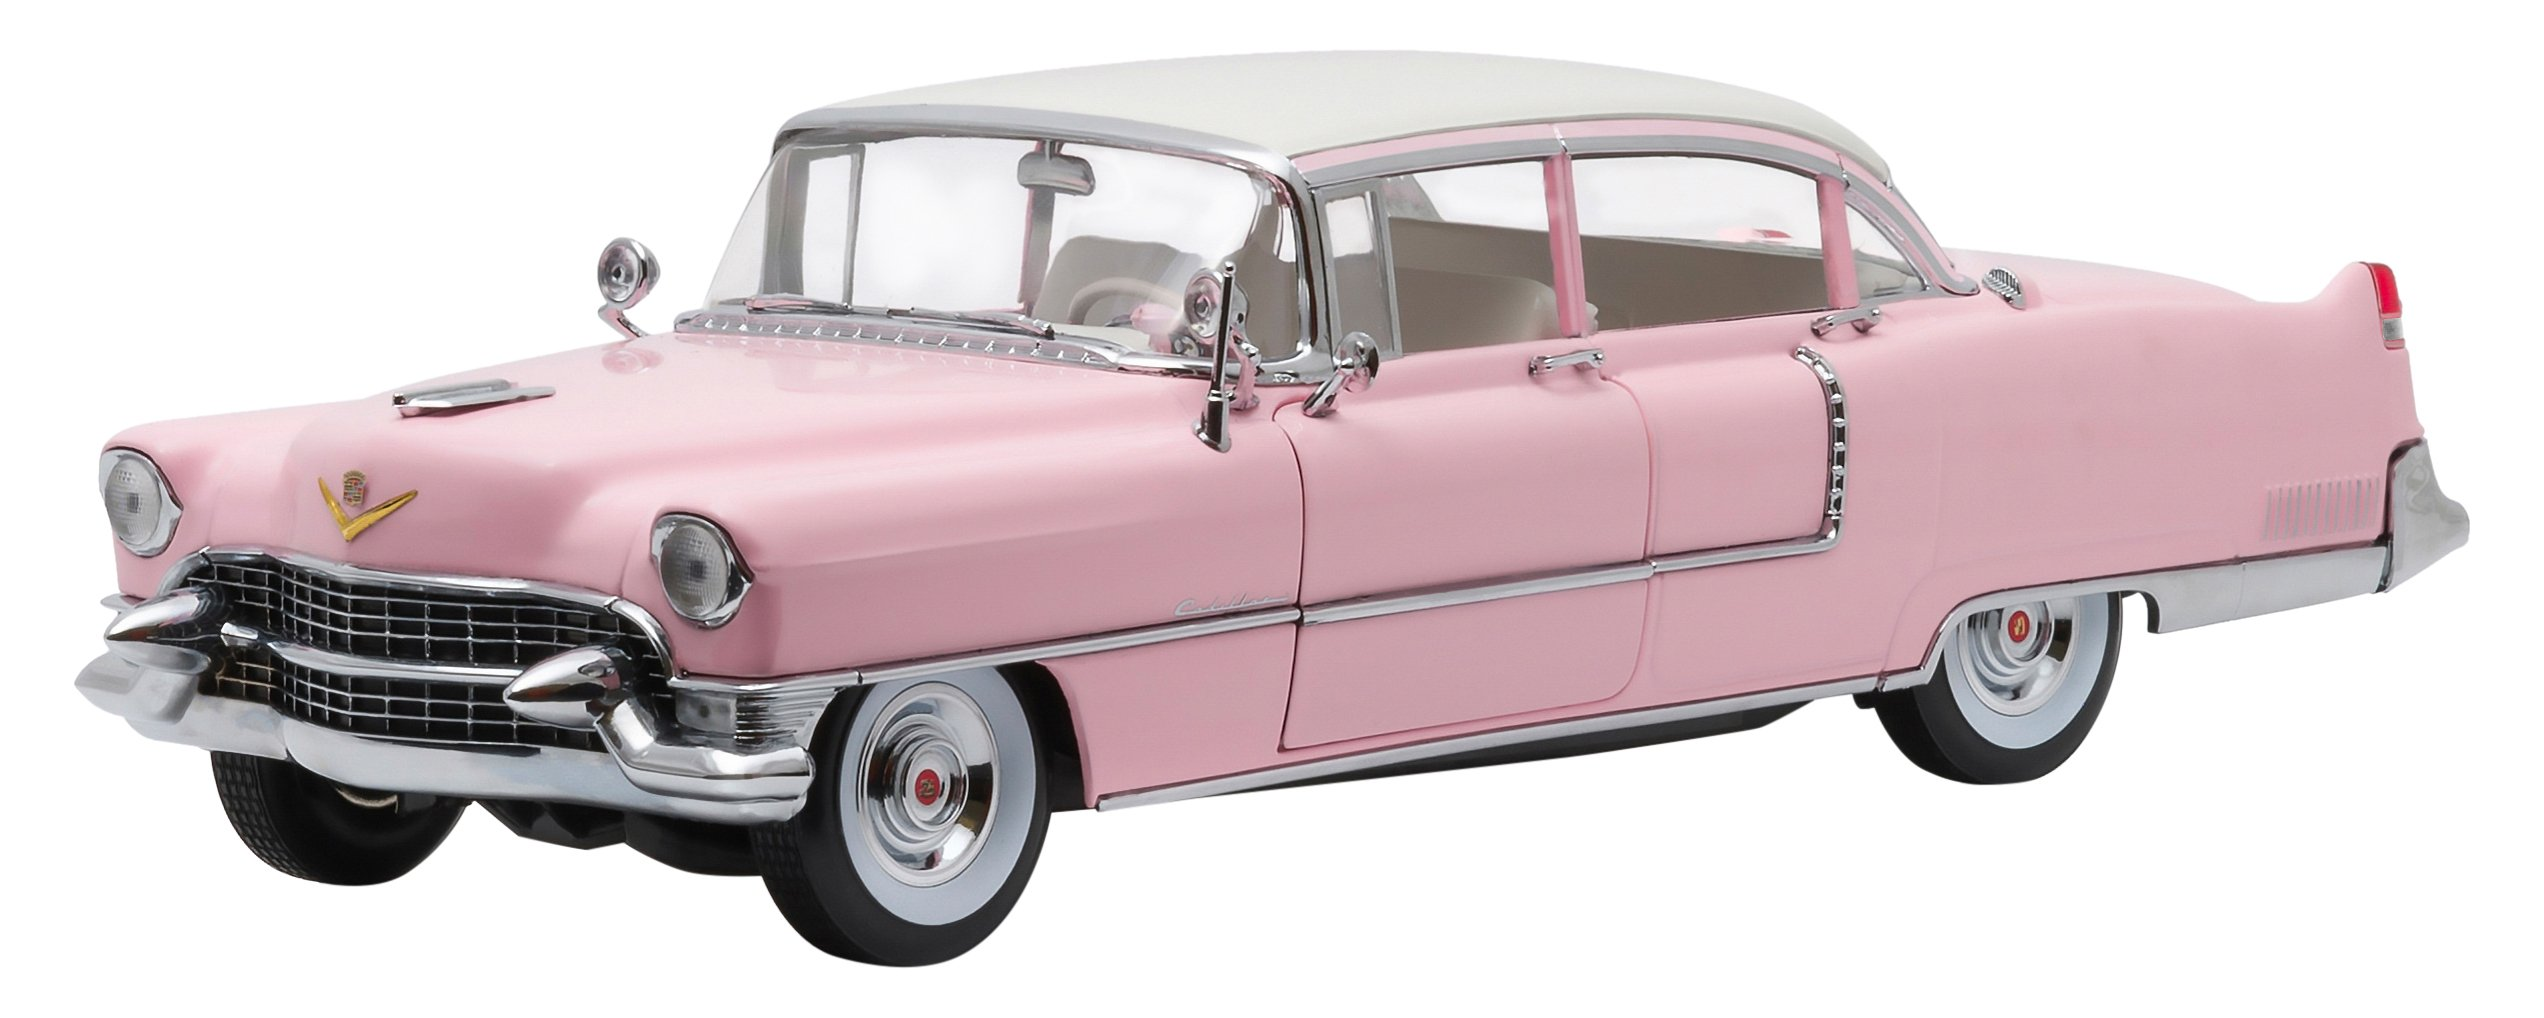 Greenlight Collectibles Elvis Presley Fleetwood 1955 Series 60 ''Pink Cadillac Vehicle (1:18 Scale)